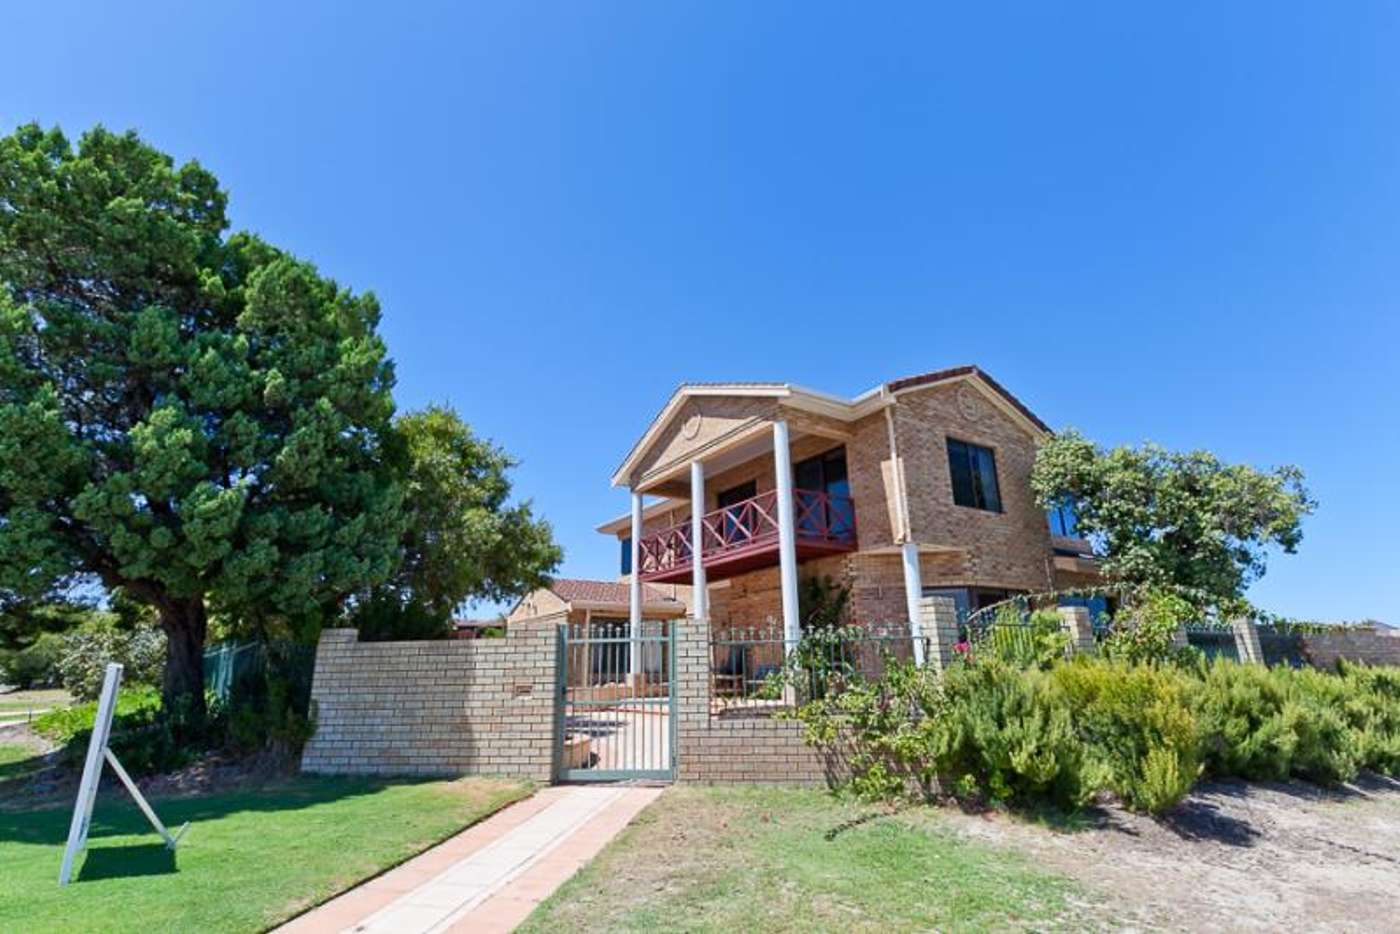 Main view of Homely house listing, 154 Waterford Drive, Hillarys WA 6025